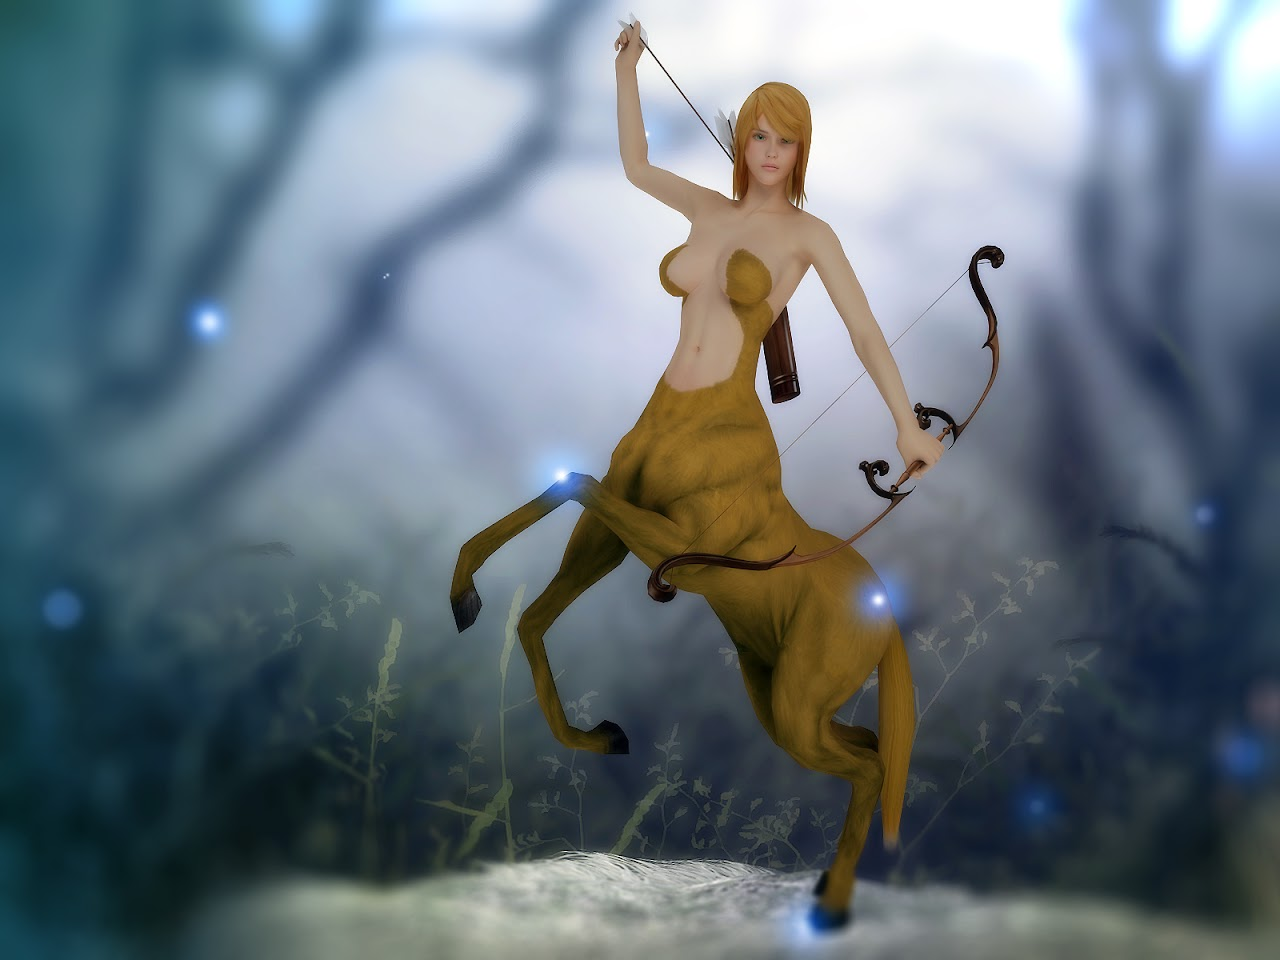 [3dFoin] Female centaur - 55% off all items Spring Sale 00